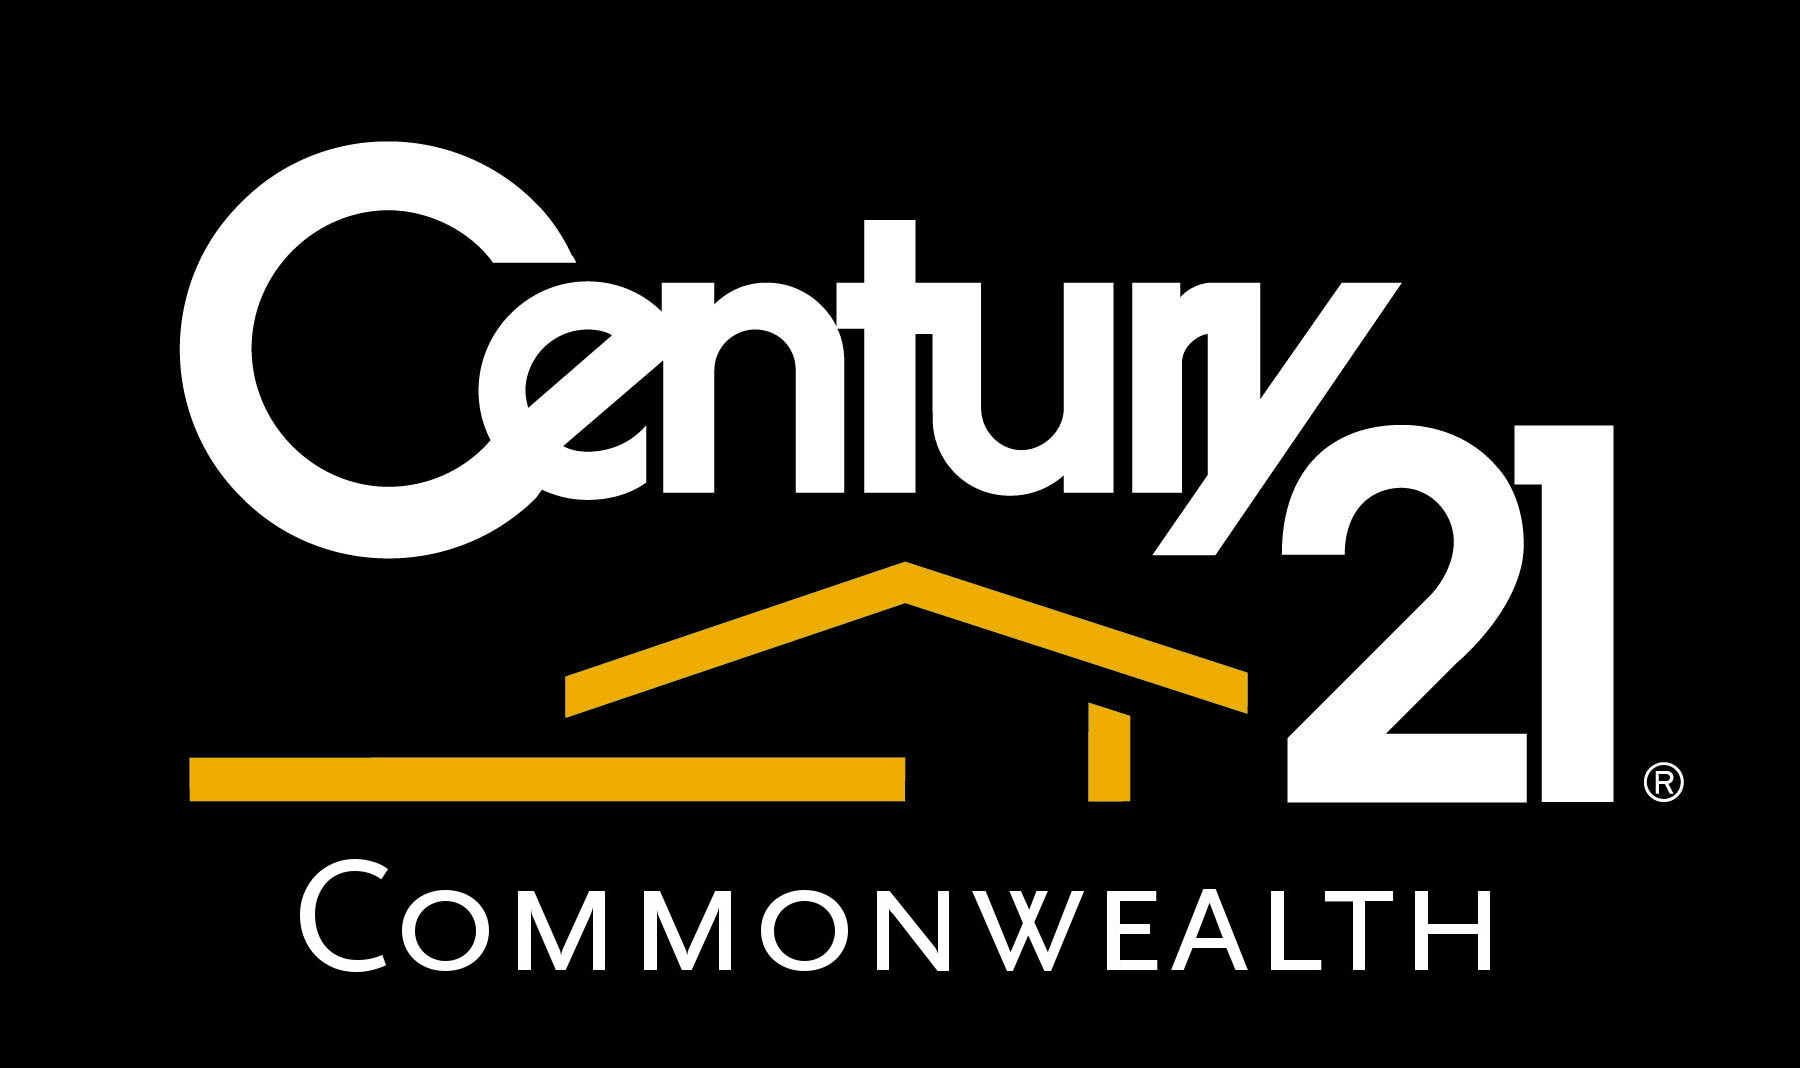 Century 21 Commonwealth.jpg